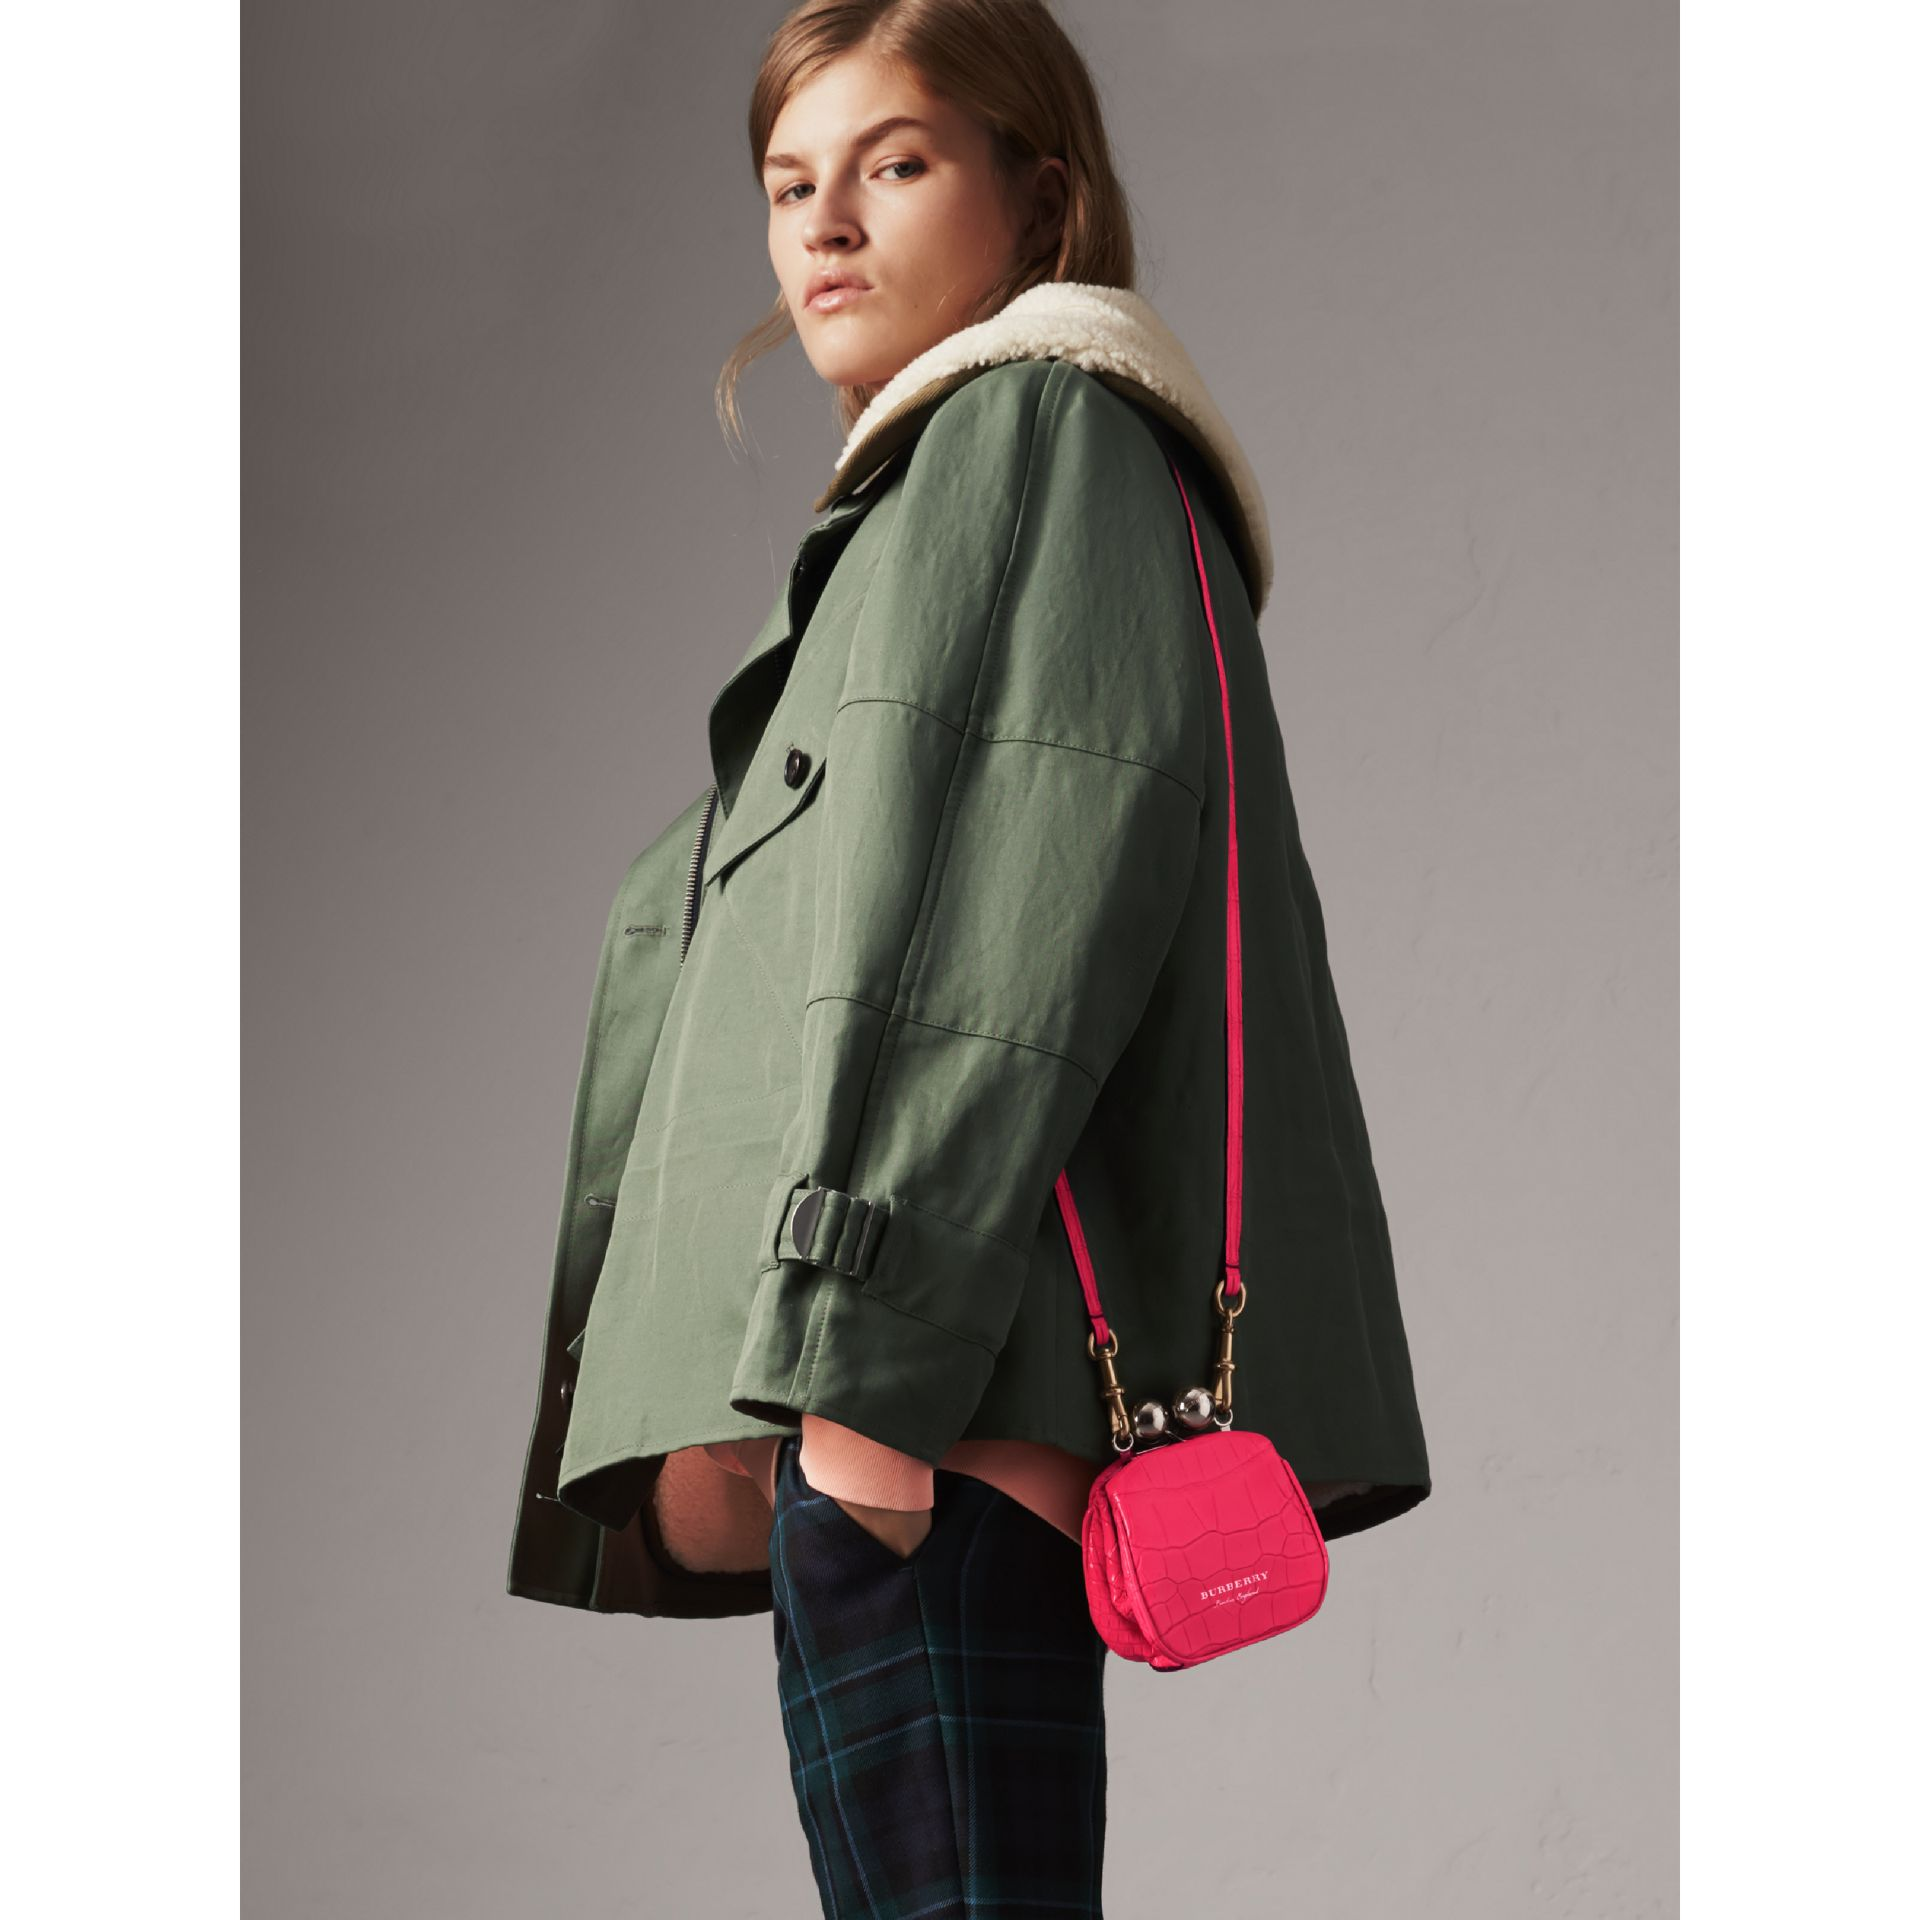 Mini Alligator Frame Bag in Neon Pink - Women | Burberry - gallery image 2